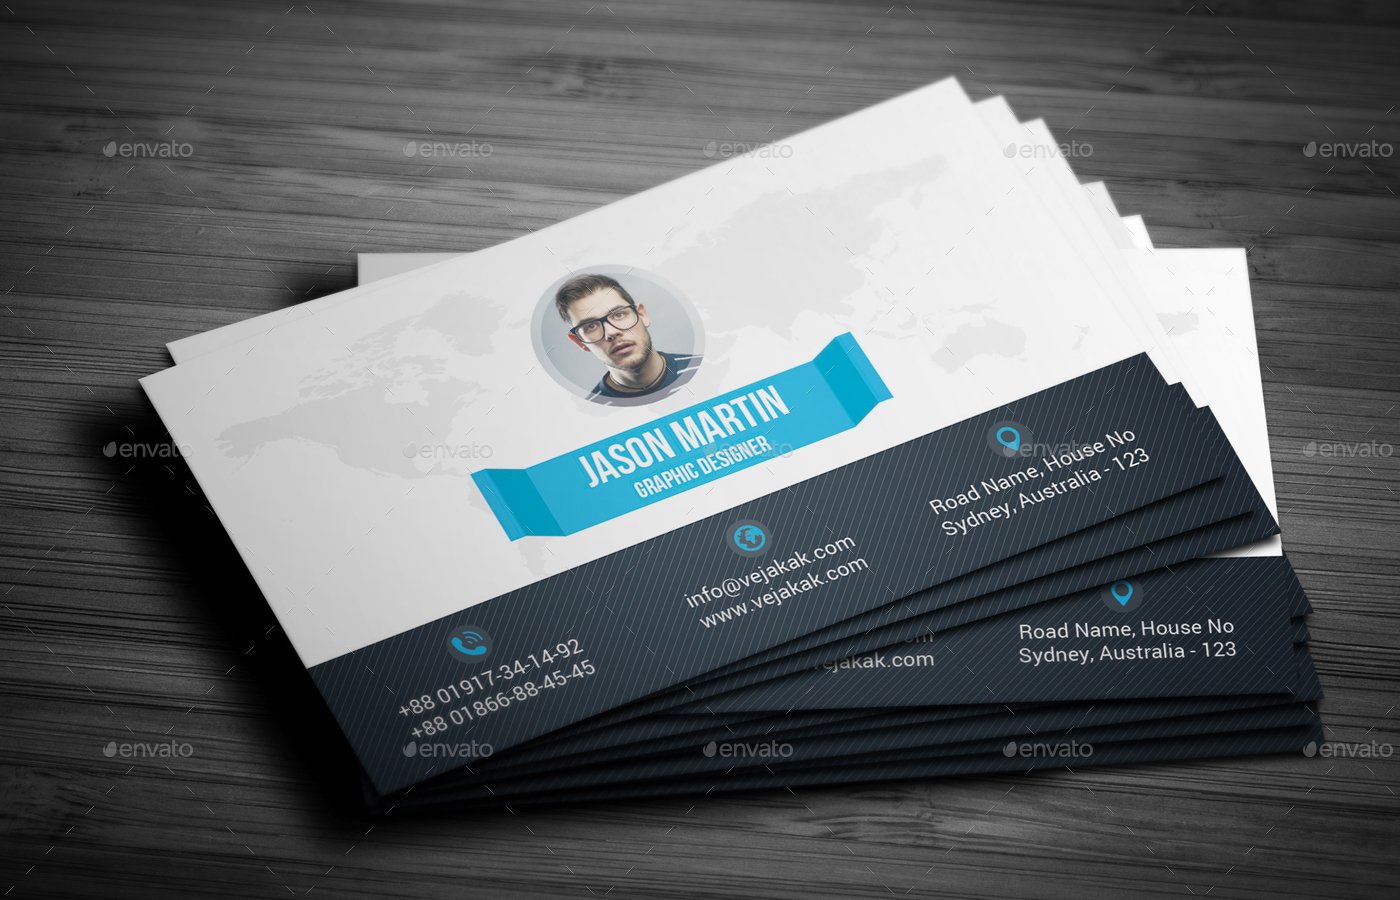 Corporate business cards vatozozdevelopment corporate business cards colourmoves